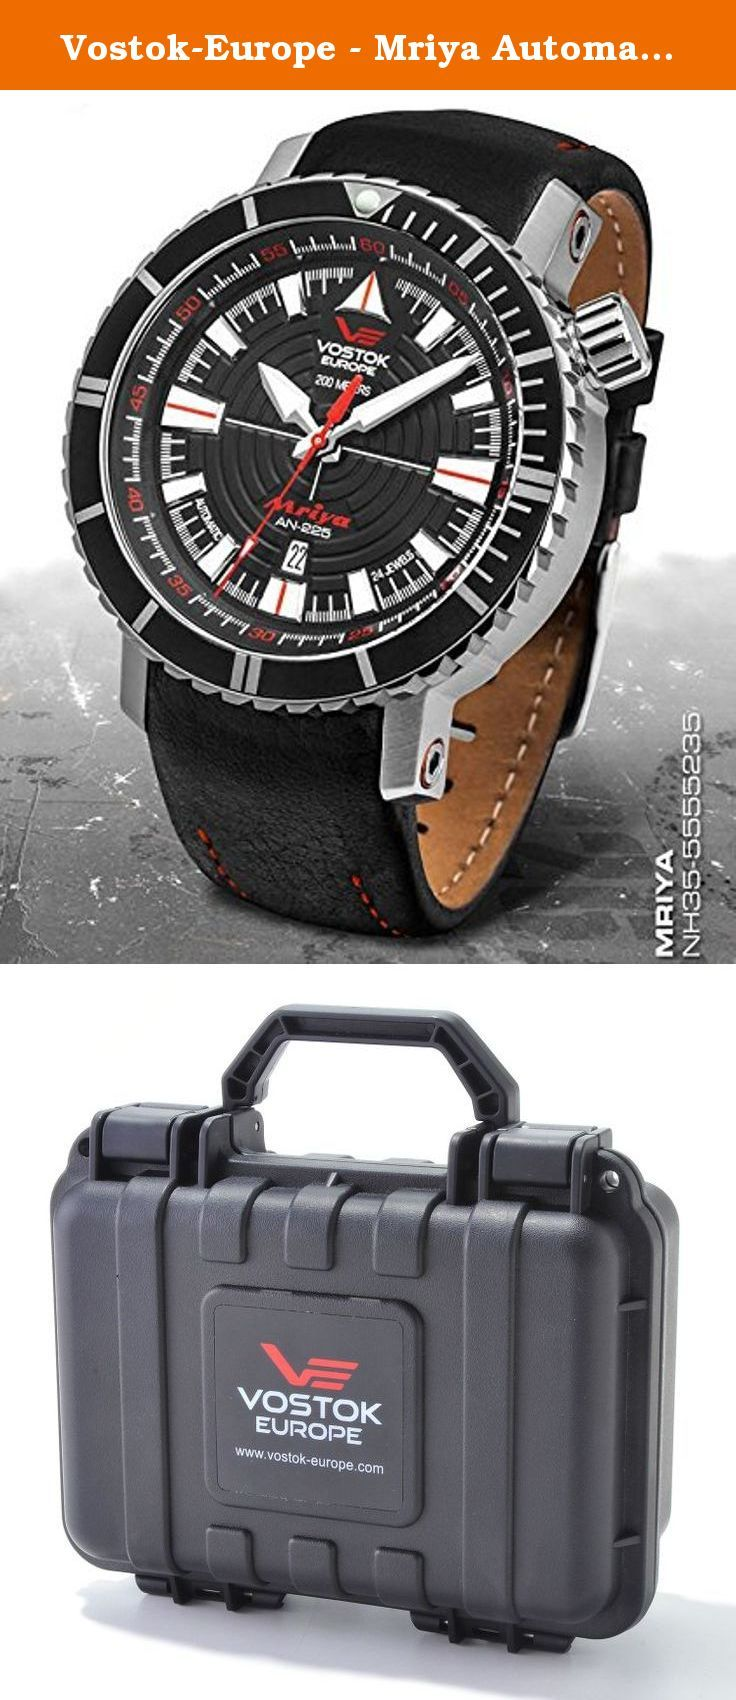 Vostok-Europe - Mriya Automatic - Black/Red/White - NH35-5555235. Vostok-Europe - Mriya Automatic - Black/Red/White - NH35-5555235 - Type: Sport/Casual - Movement: SII NH35 3 Hand Automatic (24 jewels) - Tolerance: Main daily rate from -10 to +30 s/day - Crystal: Hardened K1 Mineral Crystal with anti-reflective coating (the K1 crystal system provides the shatter resistance of mineral and the scrratch resistance of sapphire in one crystal. It is the optimum crystal for rugged, sports and...